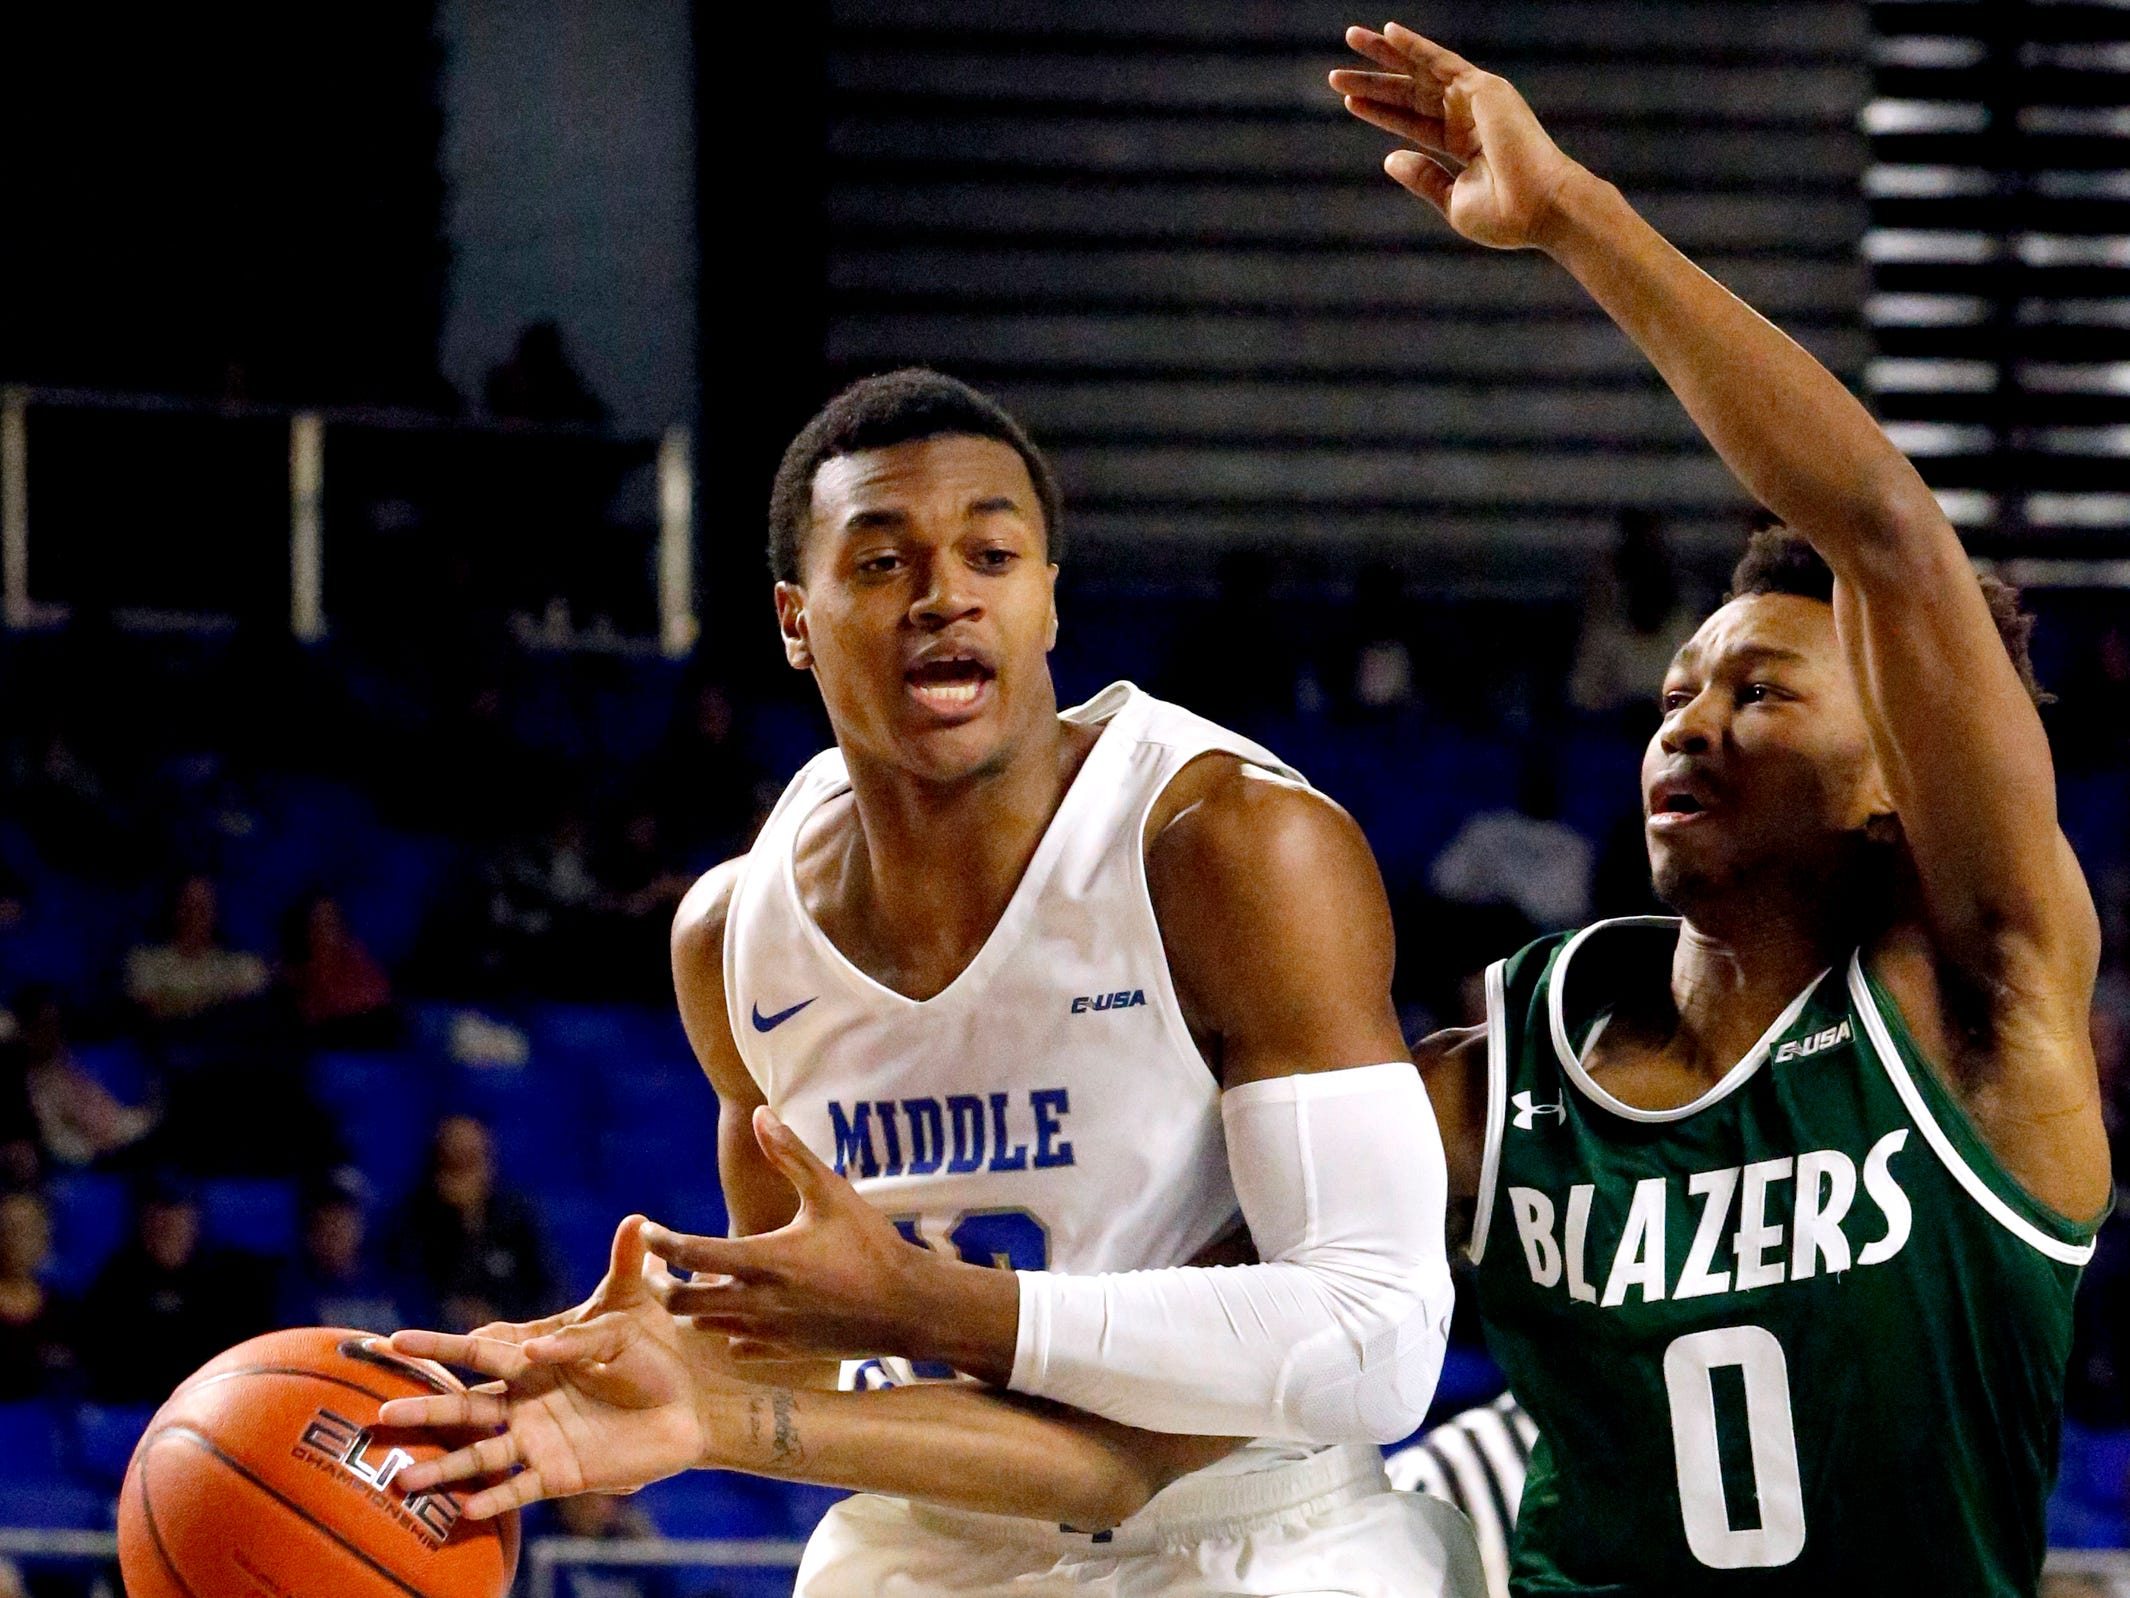 MTSU guard Jayce Johnson (10) goes up for a shot as UAB's guard Tyreek Scott-Grayson (0) knocks the ball out of his hands on Wednesday Jan. 30, 2019.